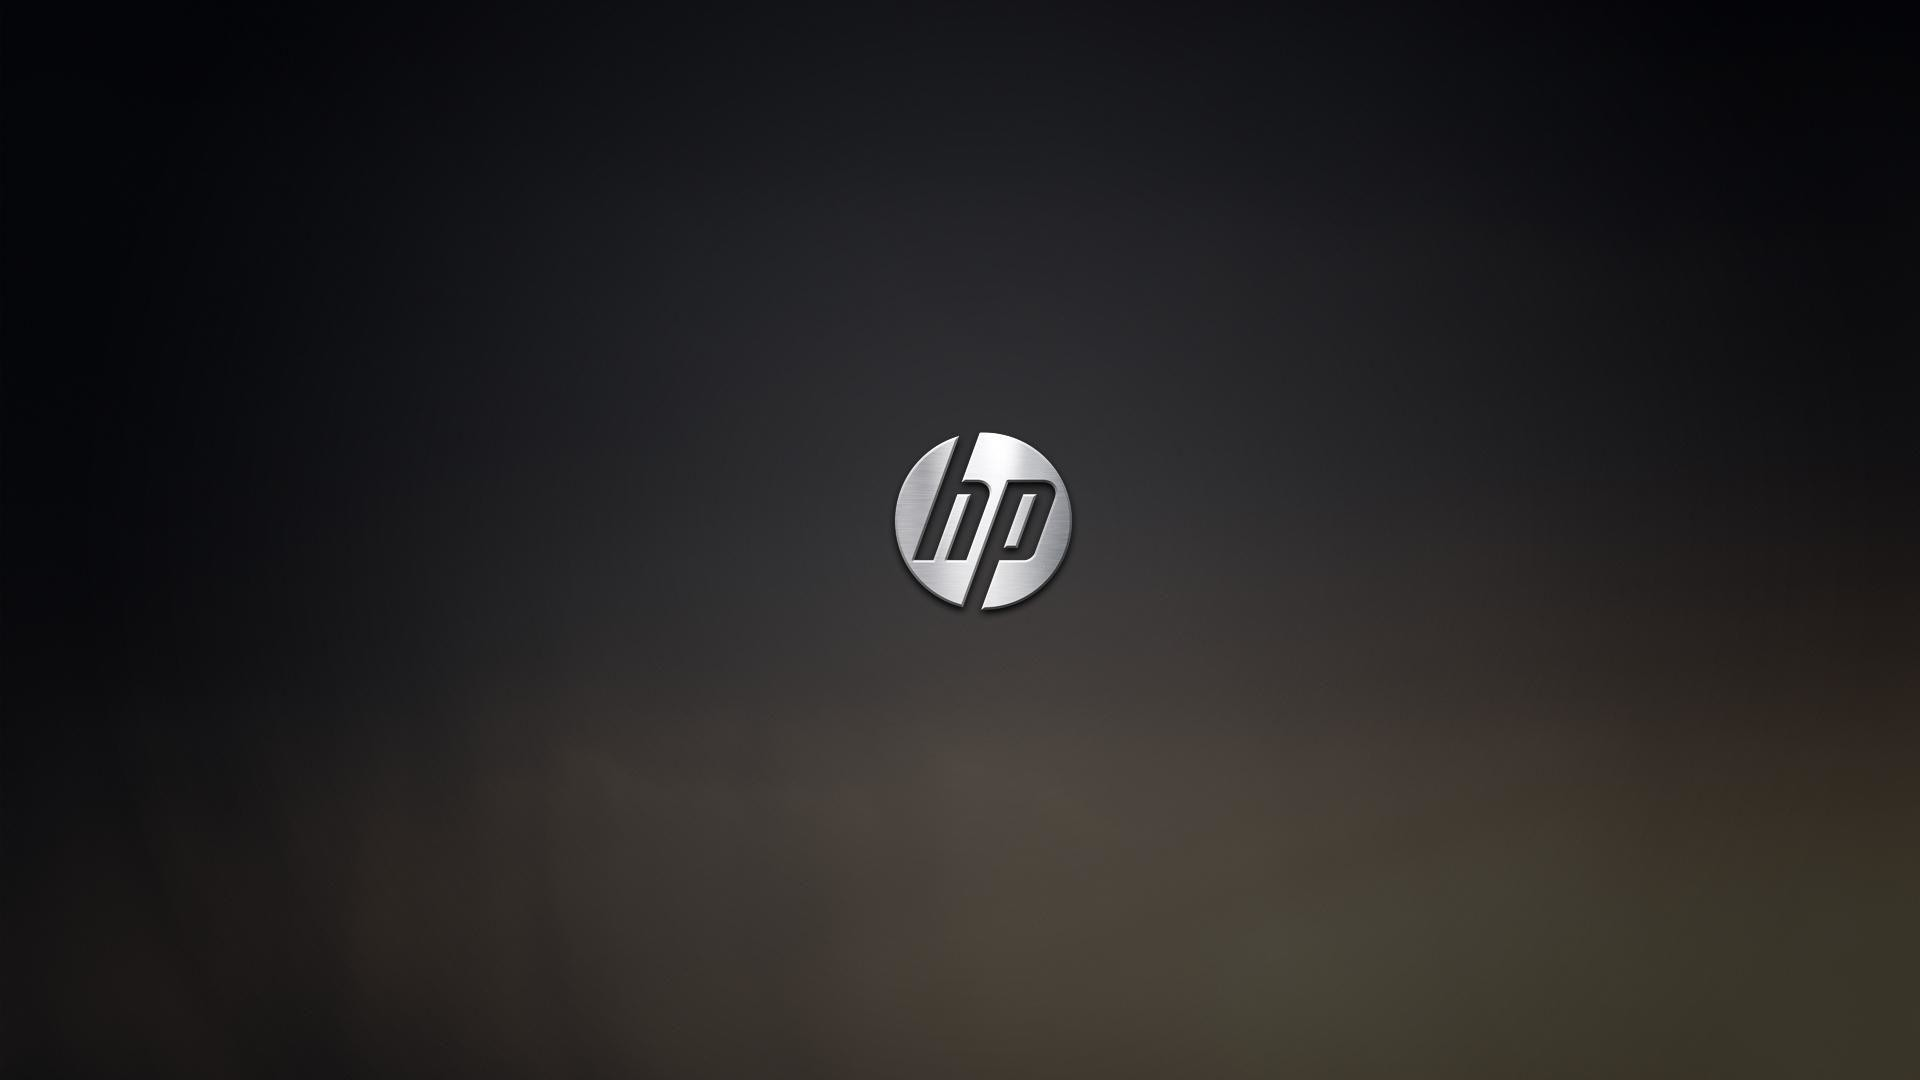 1920x1080 - Wallpapers for HP Envy 16